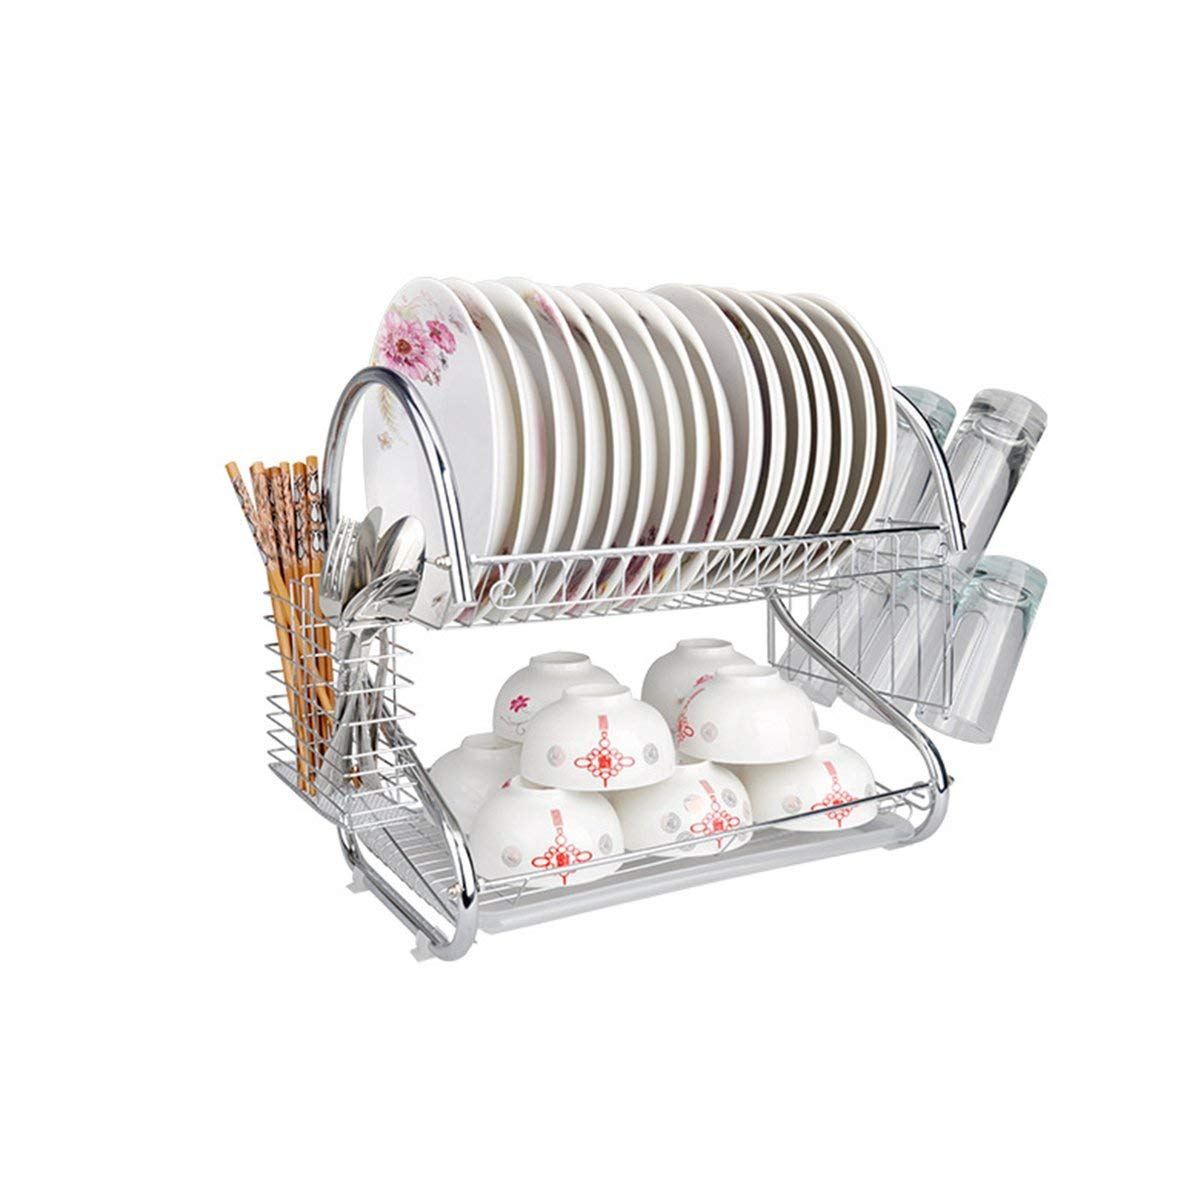 Cutlery Dish Rack, Double Layers Design Home Kitchen Stainless Steel Cutlery Dish Rack Dish Drainer Dryer Drip Tray Drying Rack Drainer Dryer DoMoment